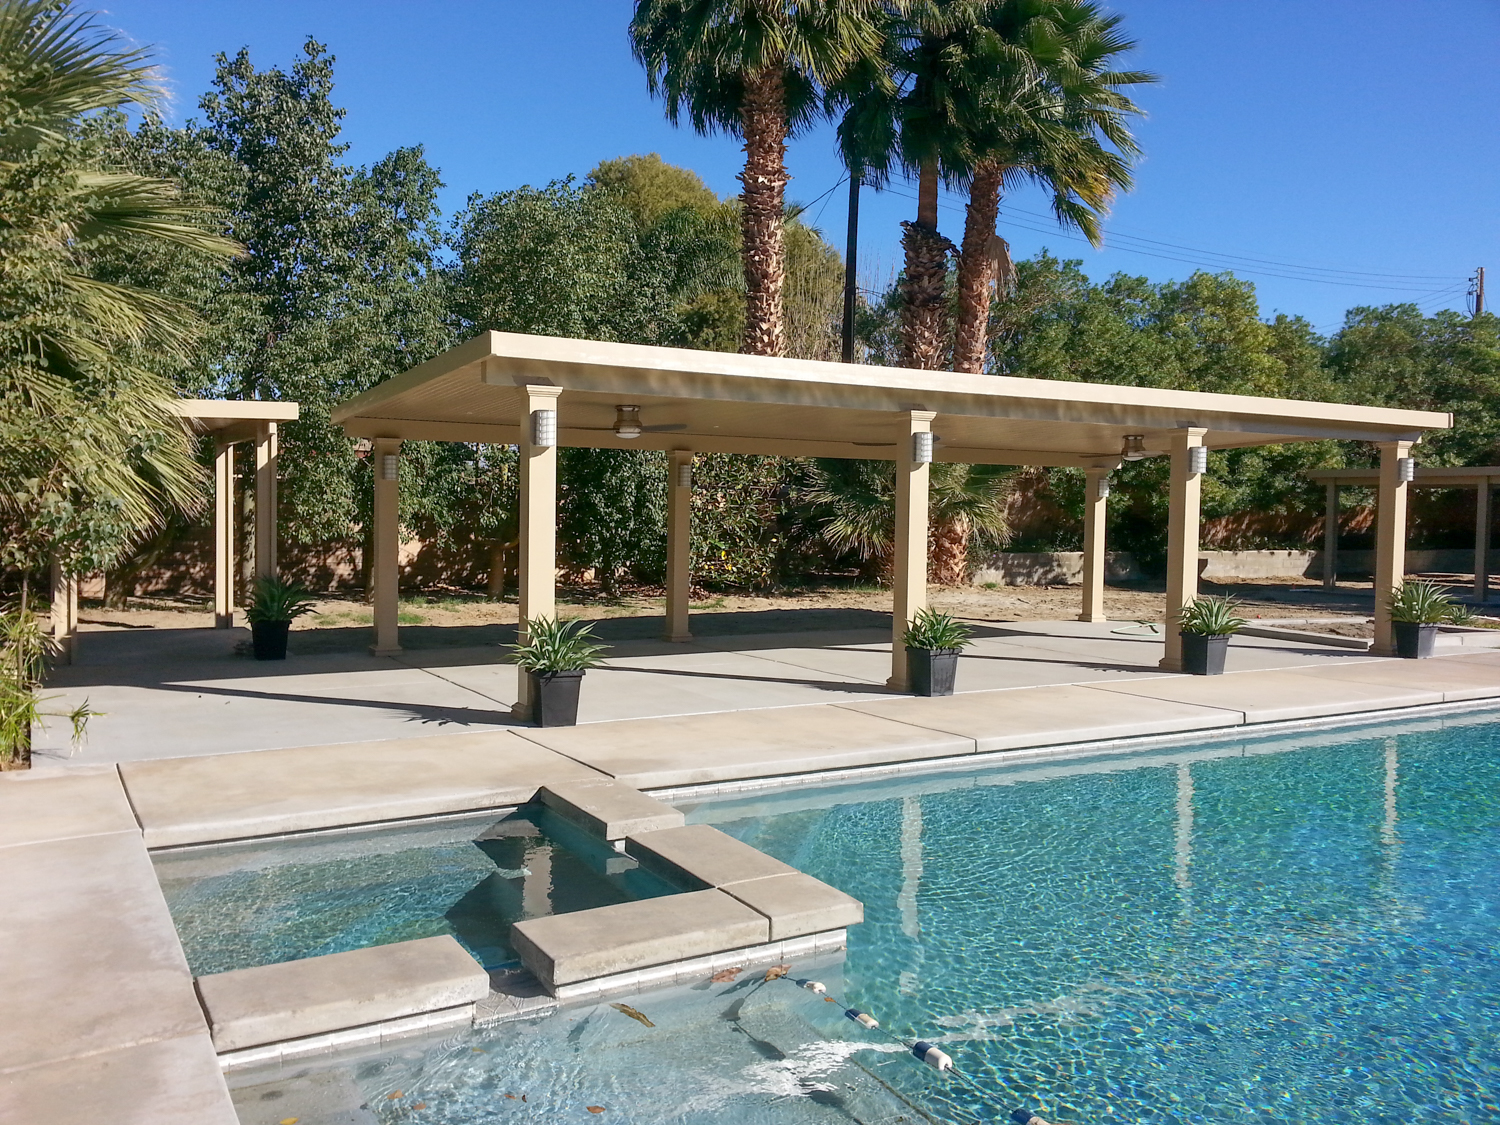 Free Standing Solid Roof Patio Shade Cover, La Quinta, CA